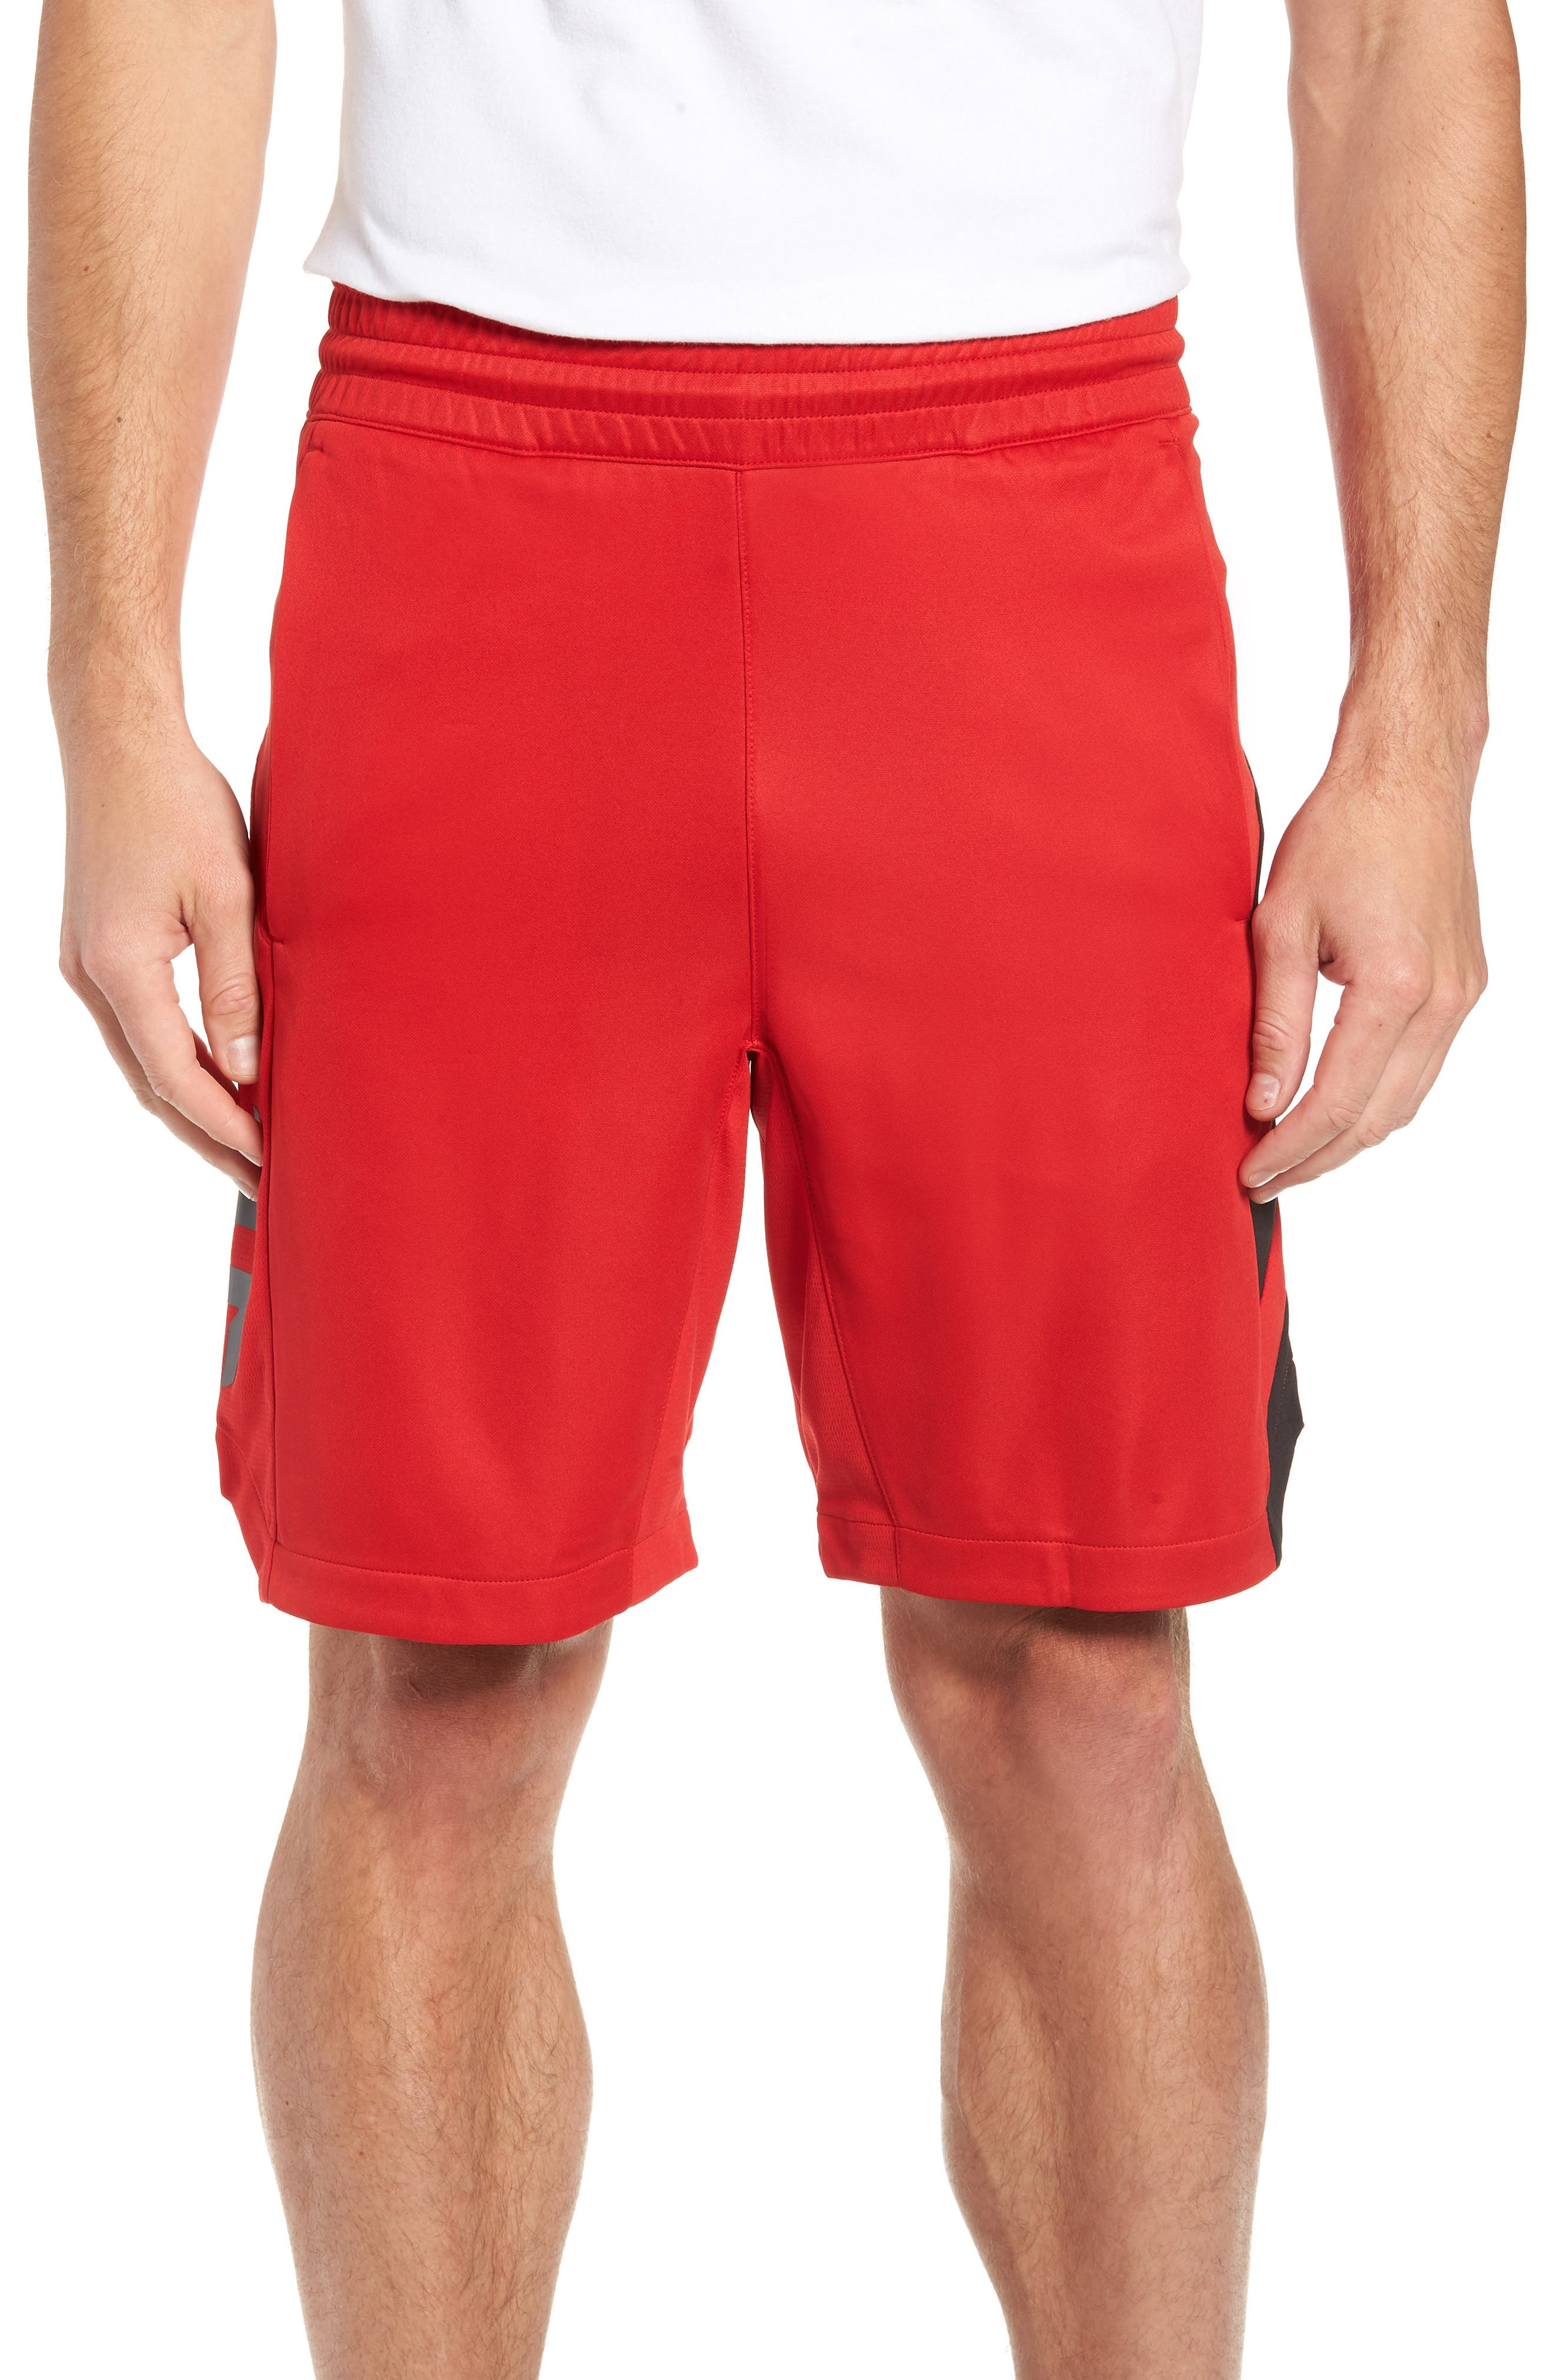 Harden Performance Shorts,                         Main,                         color, SCARLET